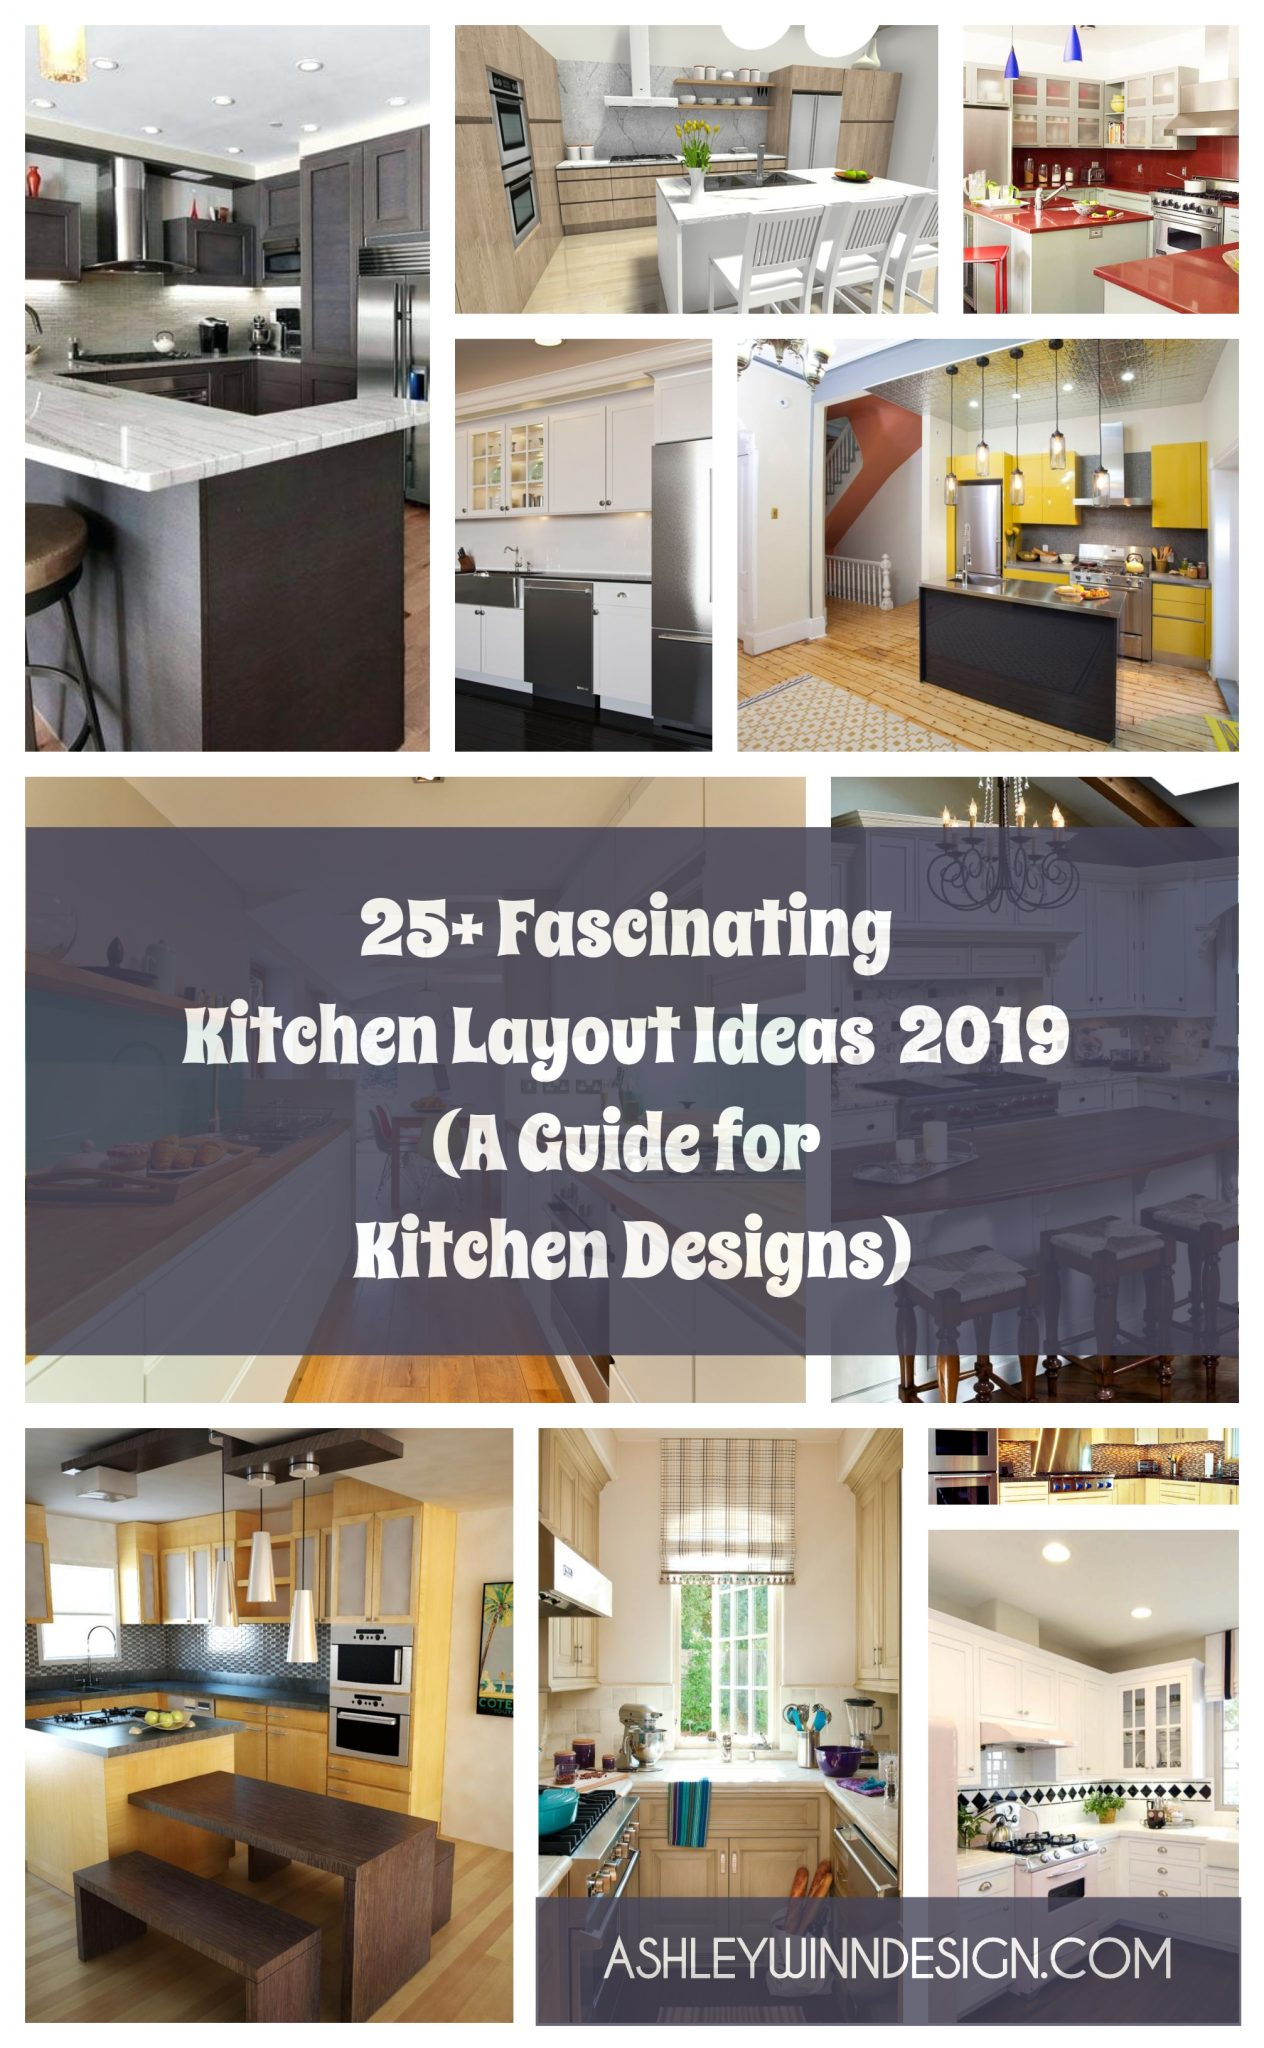 25+ Fascinating Kitchen Layout Ideas 2020 [A Guide for ...